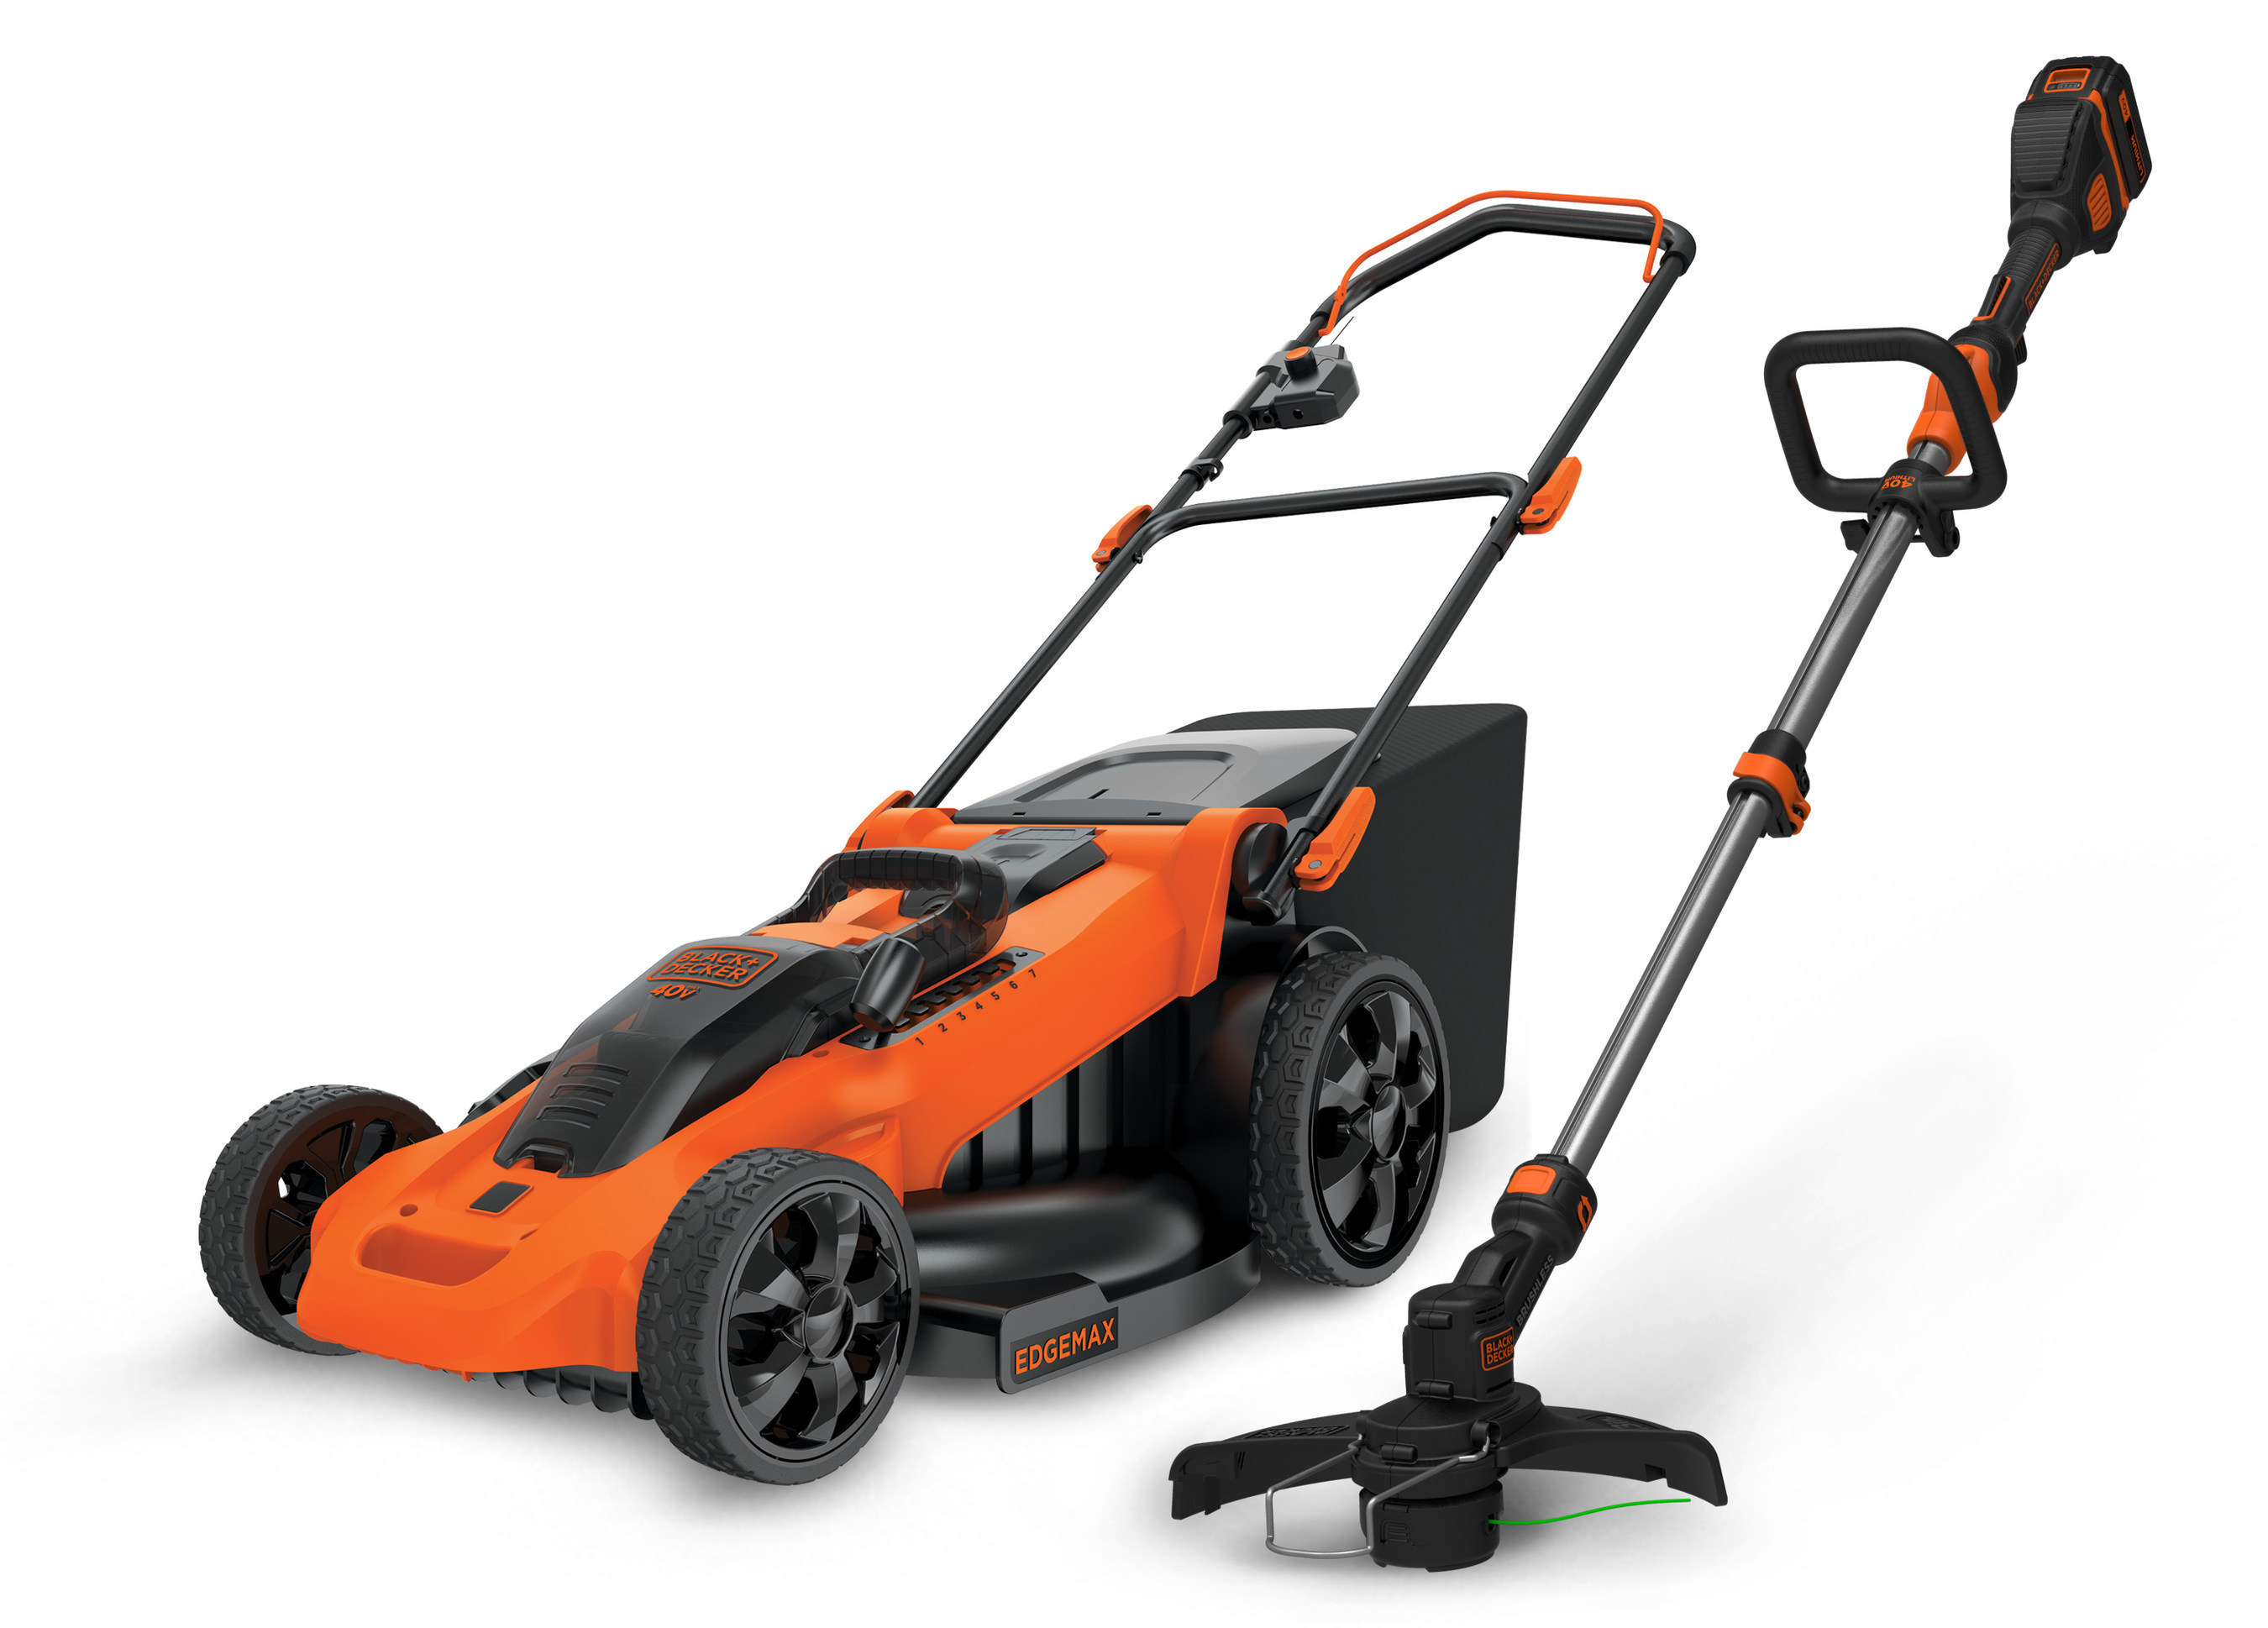 BLACK + DECKER announces additions to their collection of 40V MAX* outdoor tools with the 40V MAX* Brushless Trimmer & Edger and the 40V MAX* 20 Inch & 16 Inch Lawnmowers with AutoSense(TM) Technology. These BLACK DECKER tools are part of a larger 40V MAX* family of outdoor equipment that includes hedge trimmers, sweepers, and mowers.